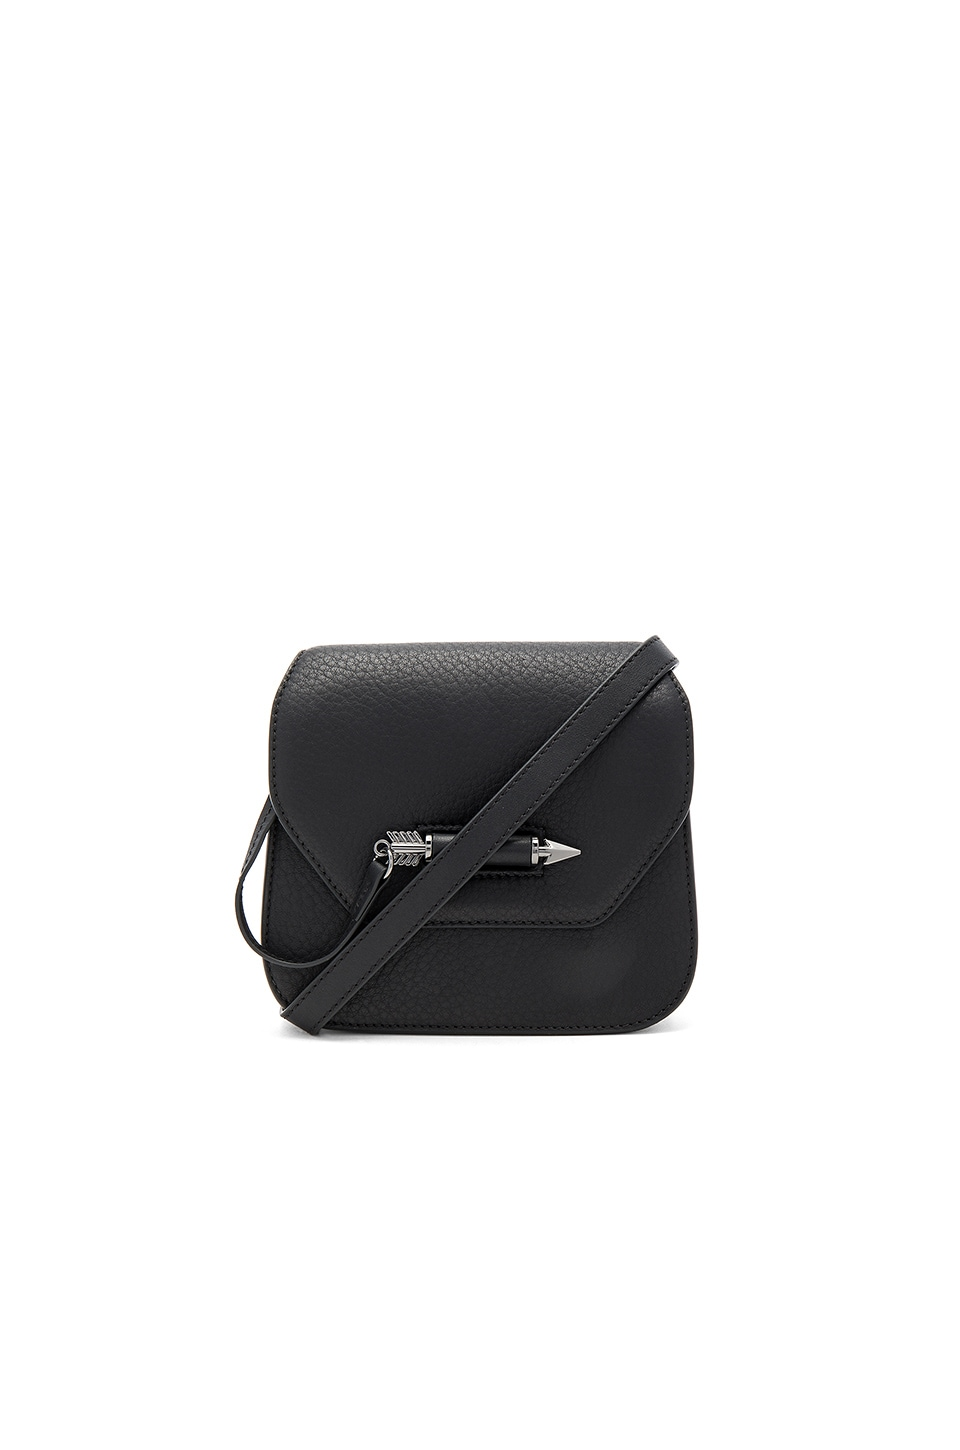 Mackage Novaki Mini Crossbody Bag in Black & Gunmetal